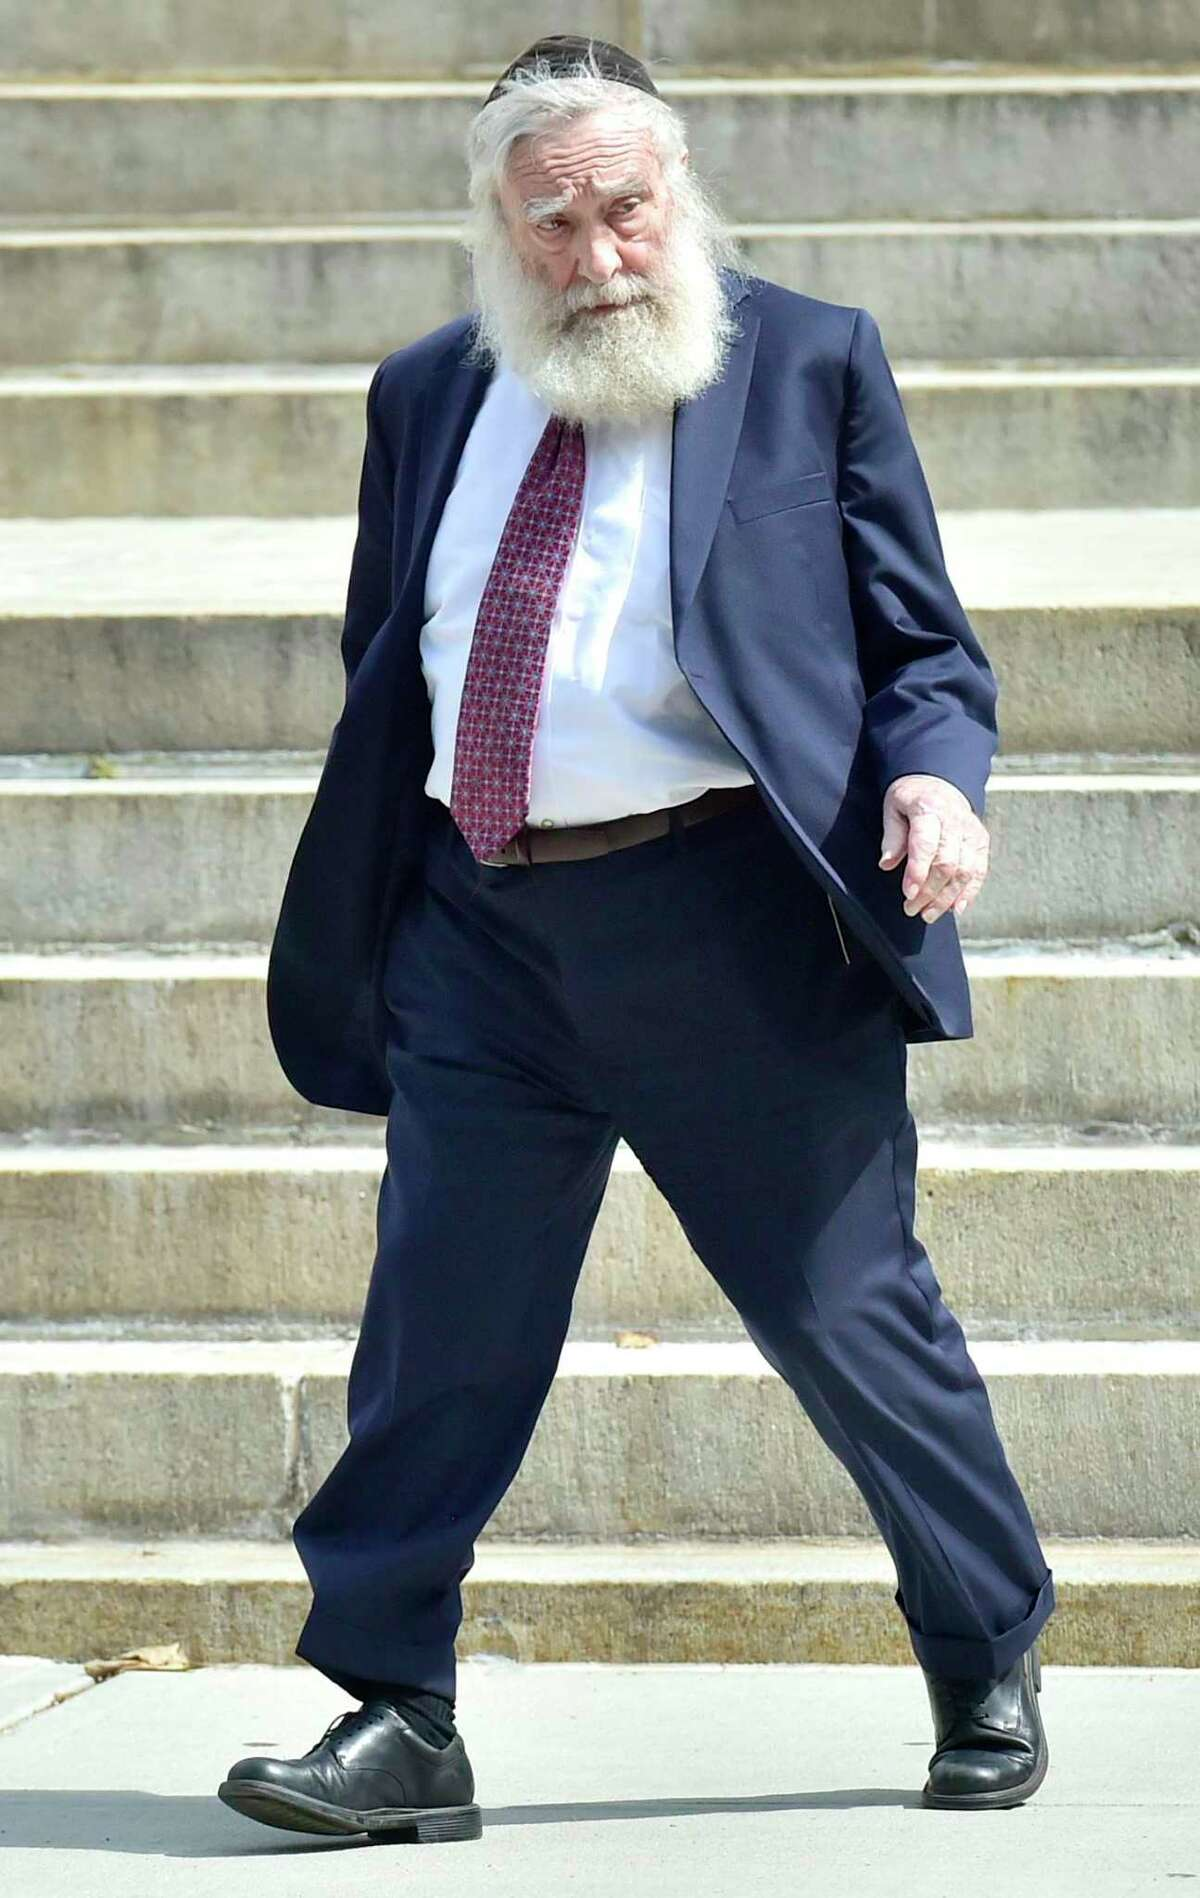 Rabbi Daniel Greer, 77, of New Haven, leaves New Haven Superior Court on Elm Street in New Haven, Conn. Monday, August 14, 2017 after he was arraigned on a criminal charge of second-degree sexual assault and risk of injury to a minor. Greer did not enter a plea. The alleged victim in the criminal charge is Eliyahu Mirlis, of New Jersey, who was awarded $15 million in in his civil lawsuit against Greer in May of 2016. Greer was a dean of the Yeshiva of New Haven/the Gan School, where the alleged victim was a high school student. Greer was accused in May 2016 of repeatedly sexually assaulting Mirlis, of New Jersey, over several years in the early- to mid-2000s. Mirlis attended the school from 2001 to 2005. Greer has denied the allegations.